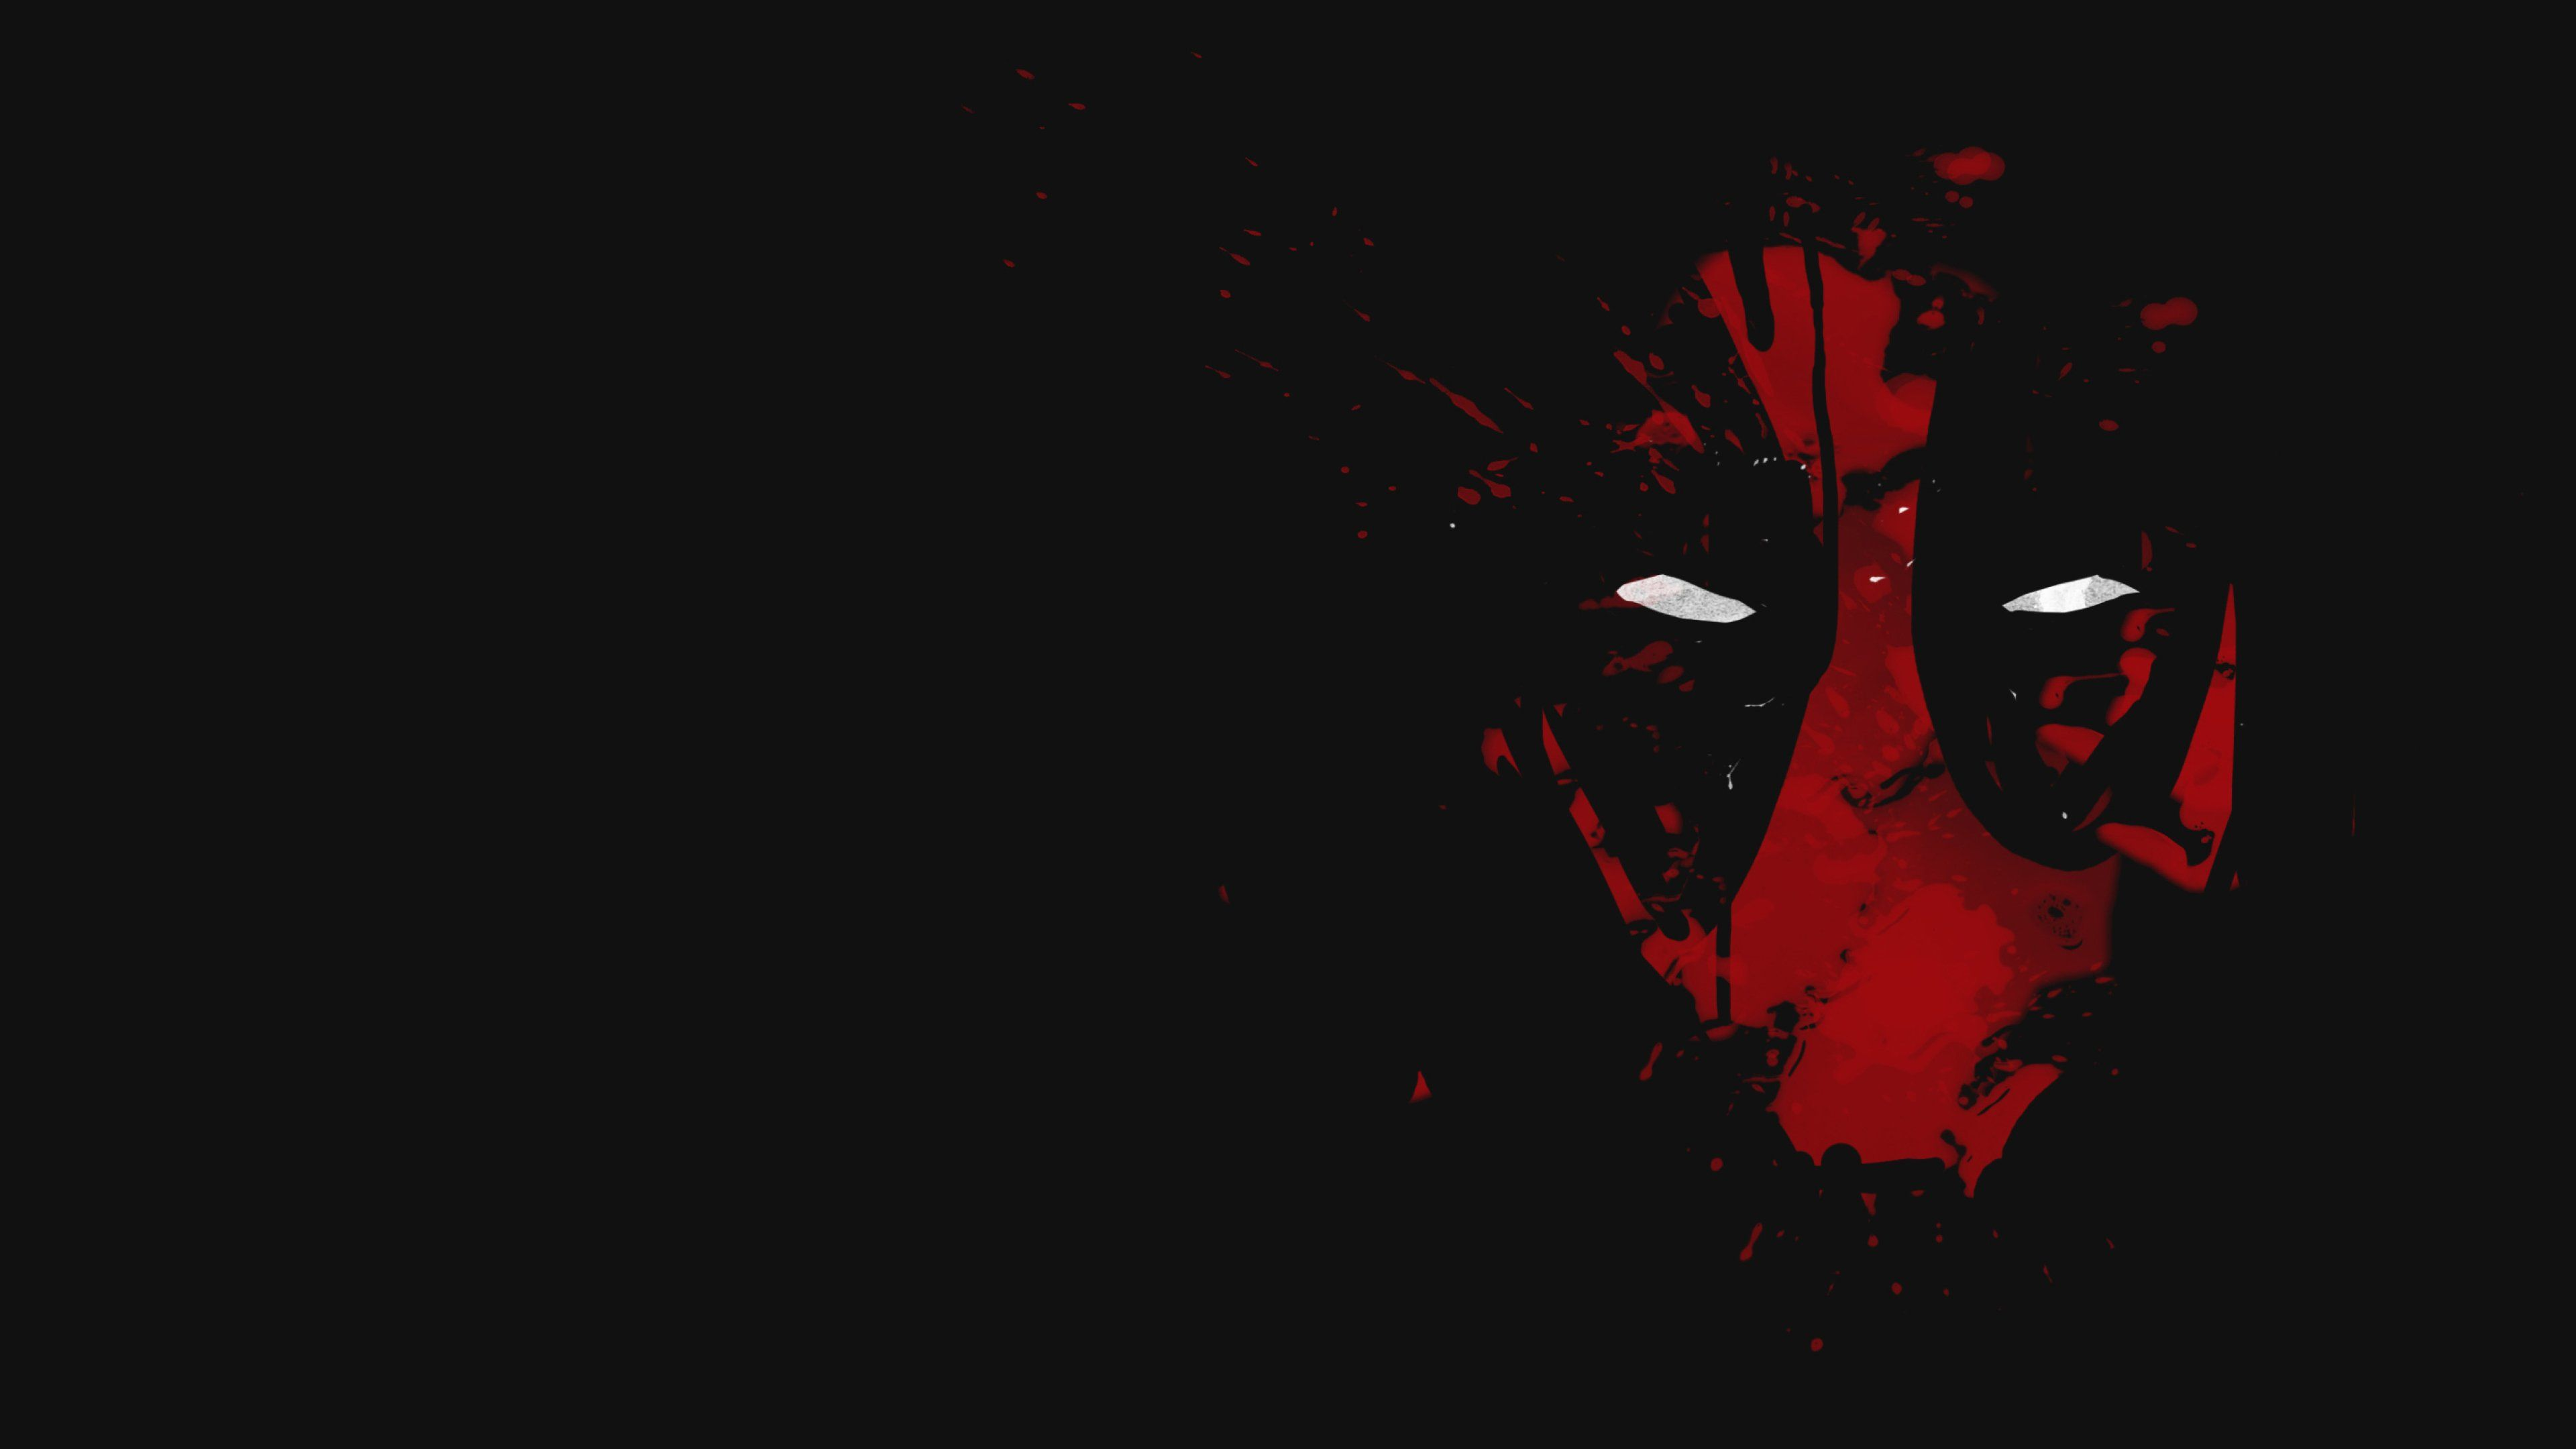 Deadpool Abstract 4k Superheroes Wallpapers Hd Wallpapers Digital Art Wallpapers Deadpool Wa Deadpool Logo Wallpaper 4k Wallpapers For Pc Deadpool Wallpaper